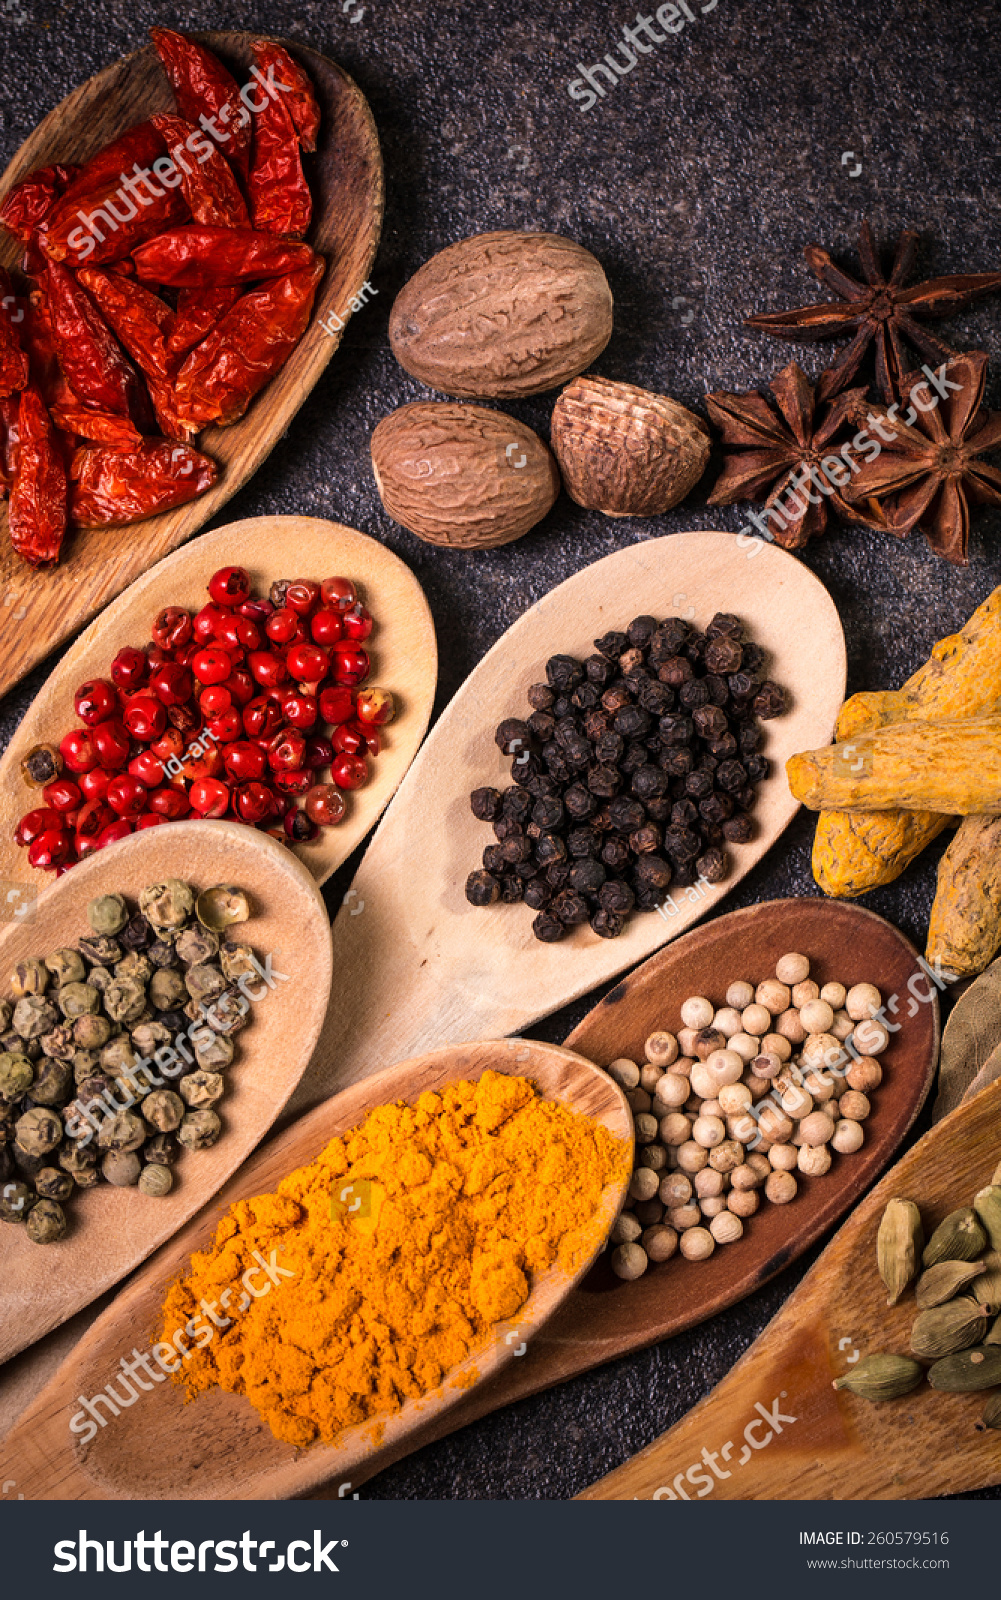 Ingredients,Spices Stock Photo 260579516 : Shutterstock